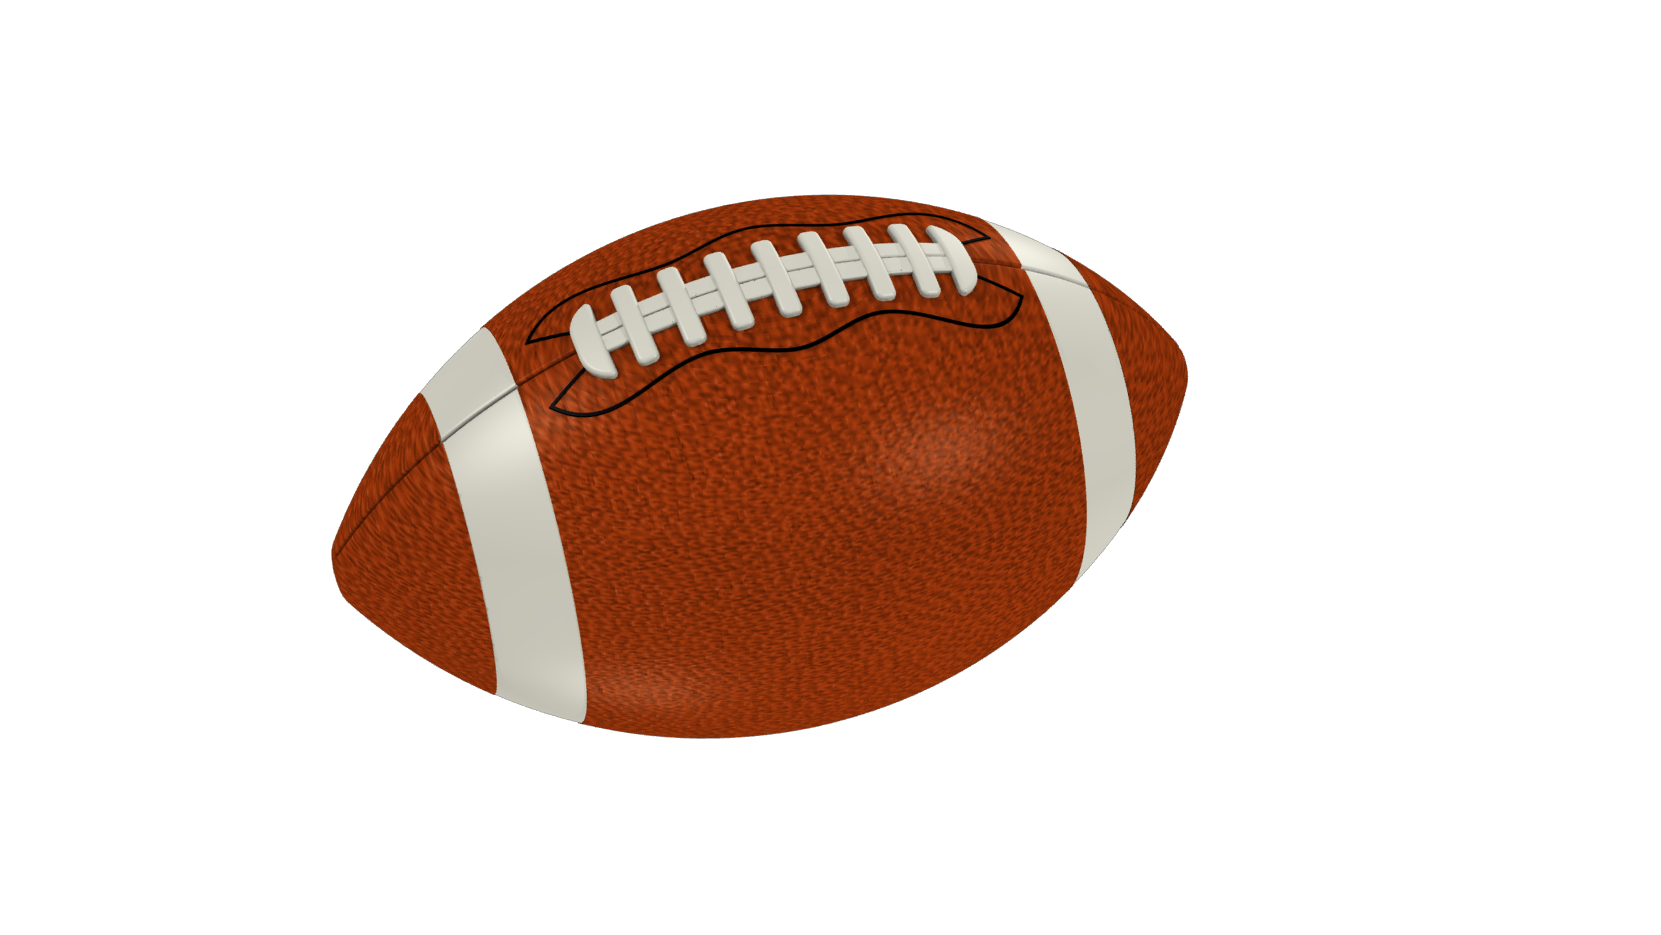 Football clipart designs clip Infinity Clipart football - Free Clipart on Dumielauxepices.net clip